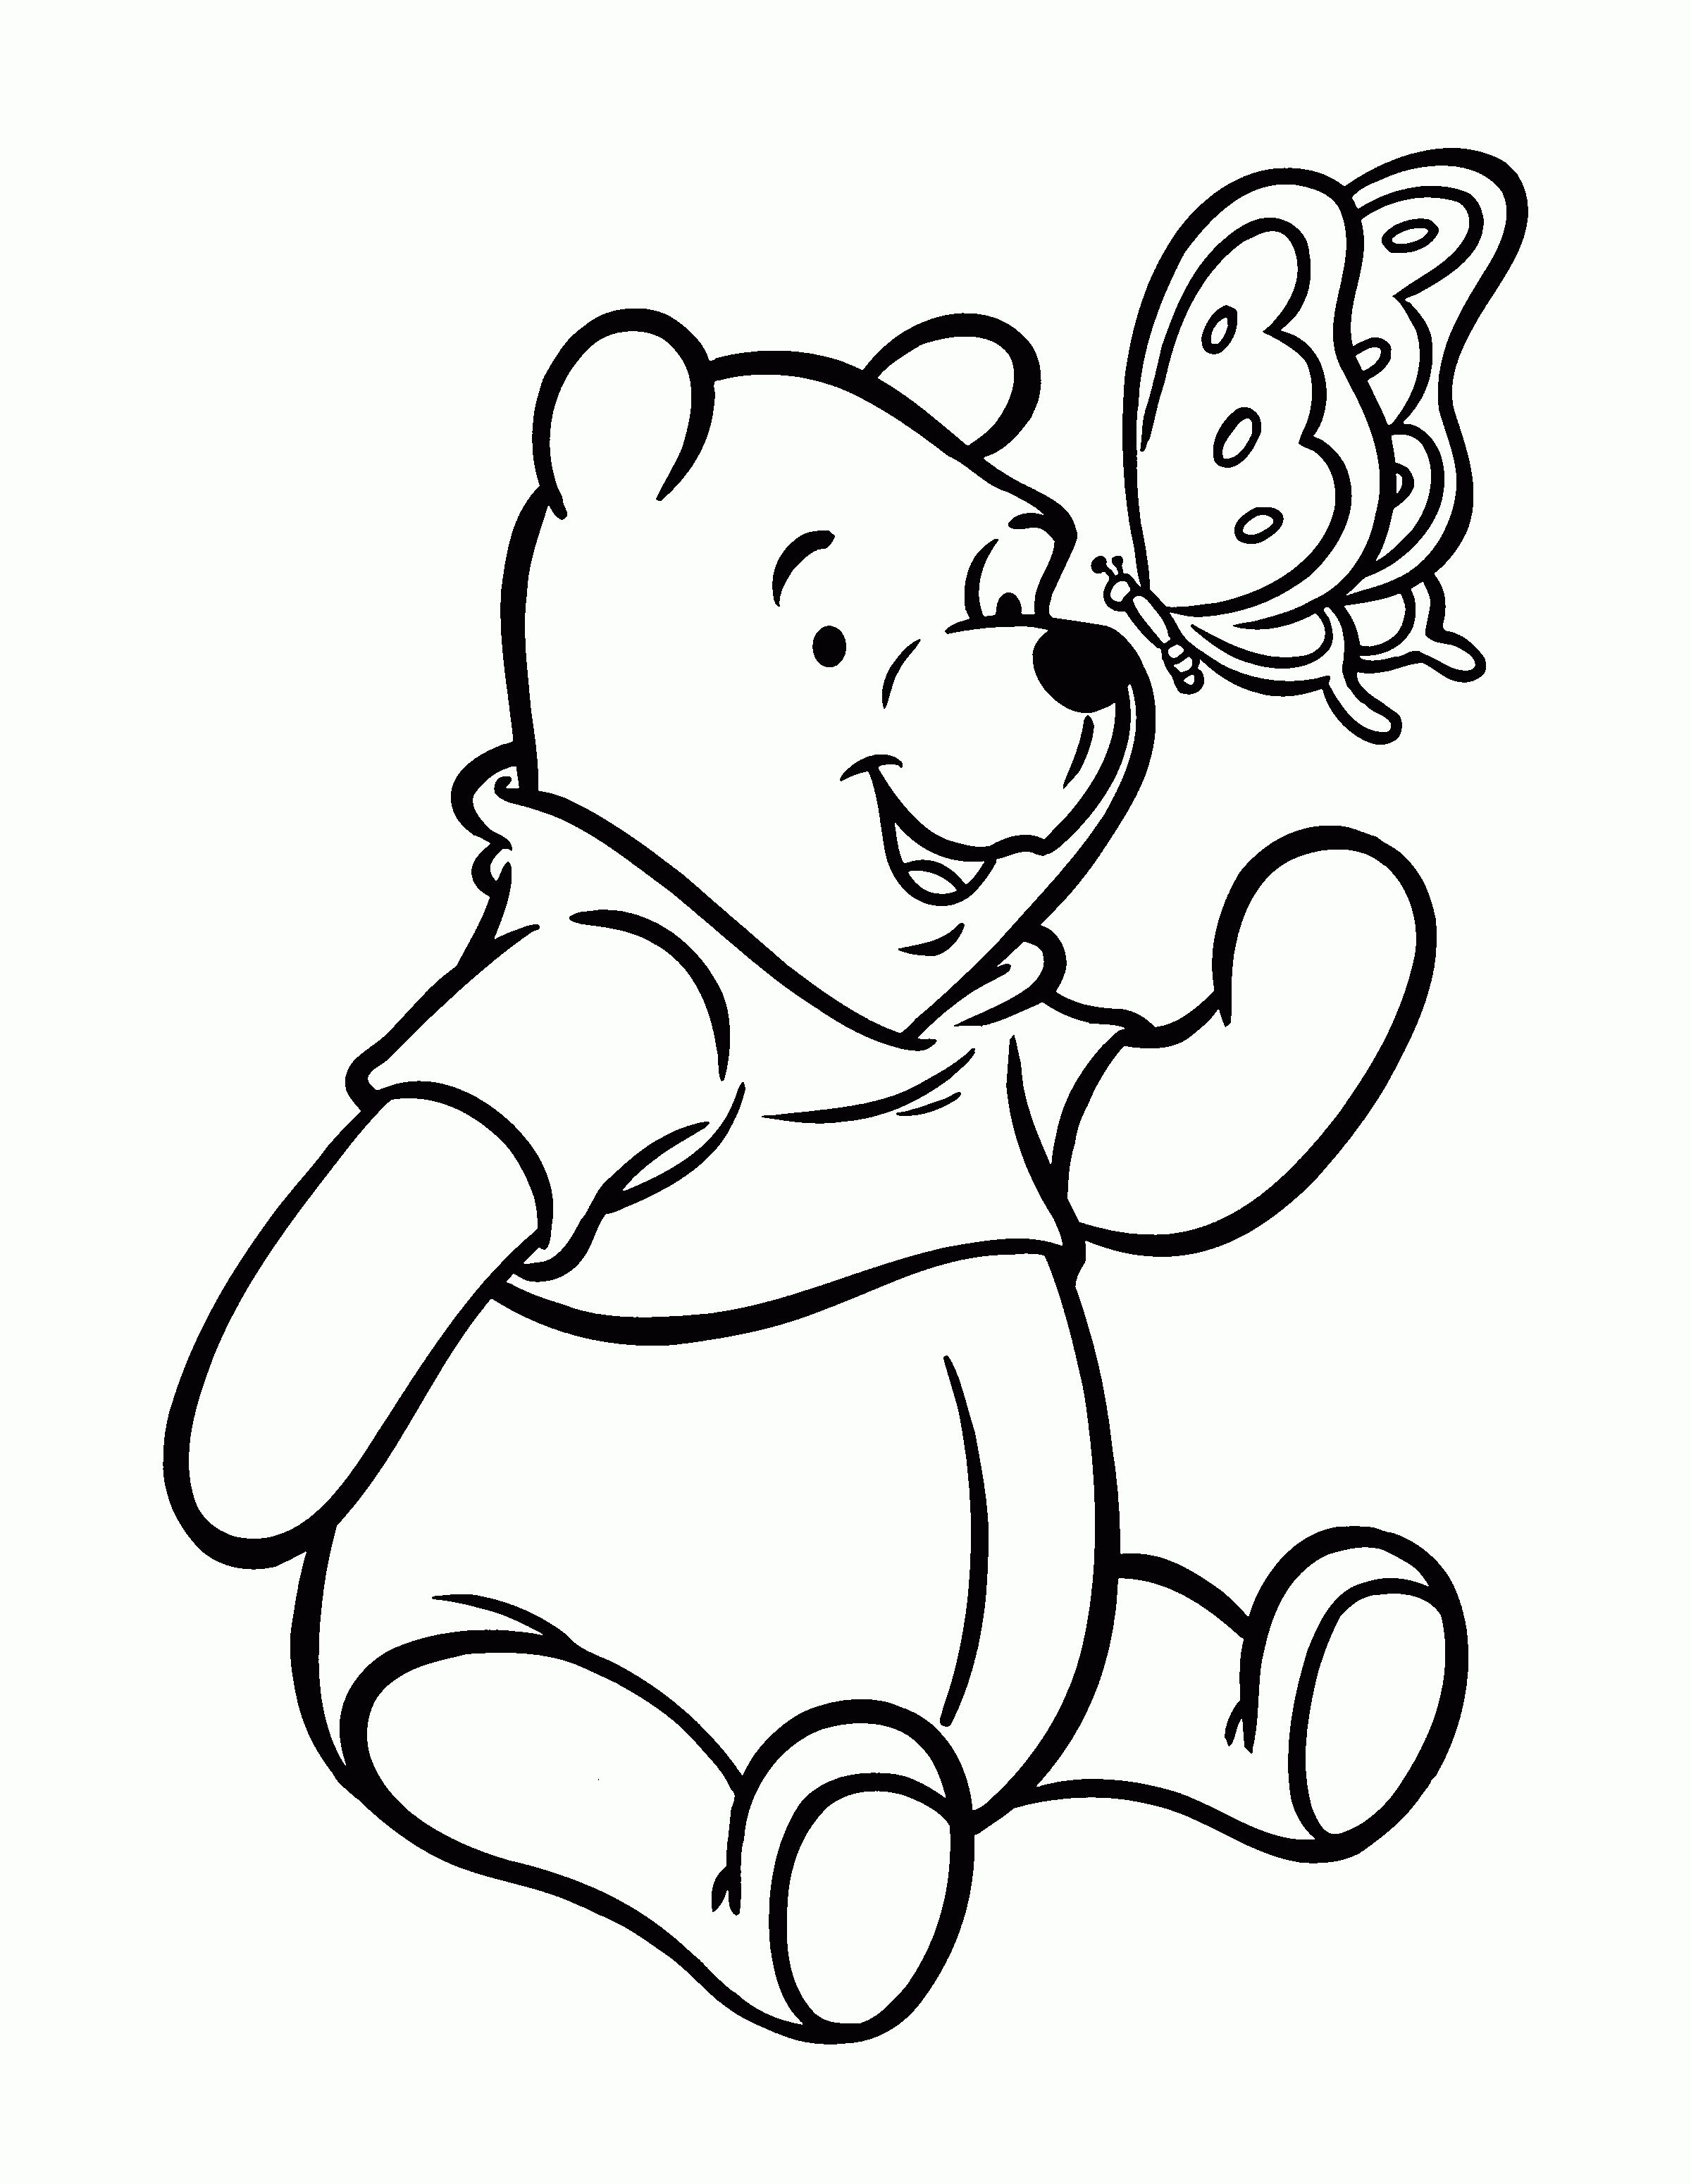 Printable Coloring Pages Winnie The Pooh Bear Coloring Pages